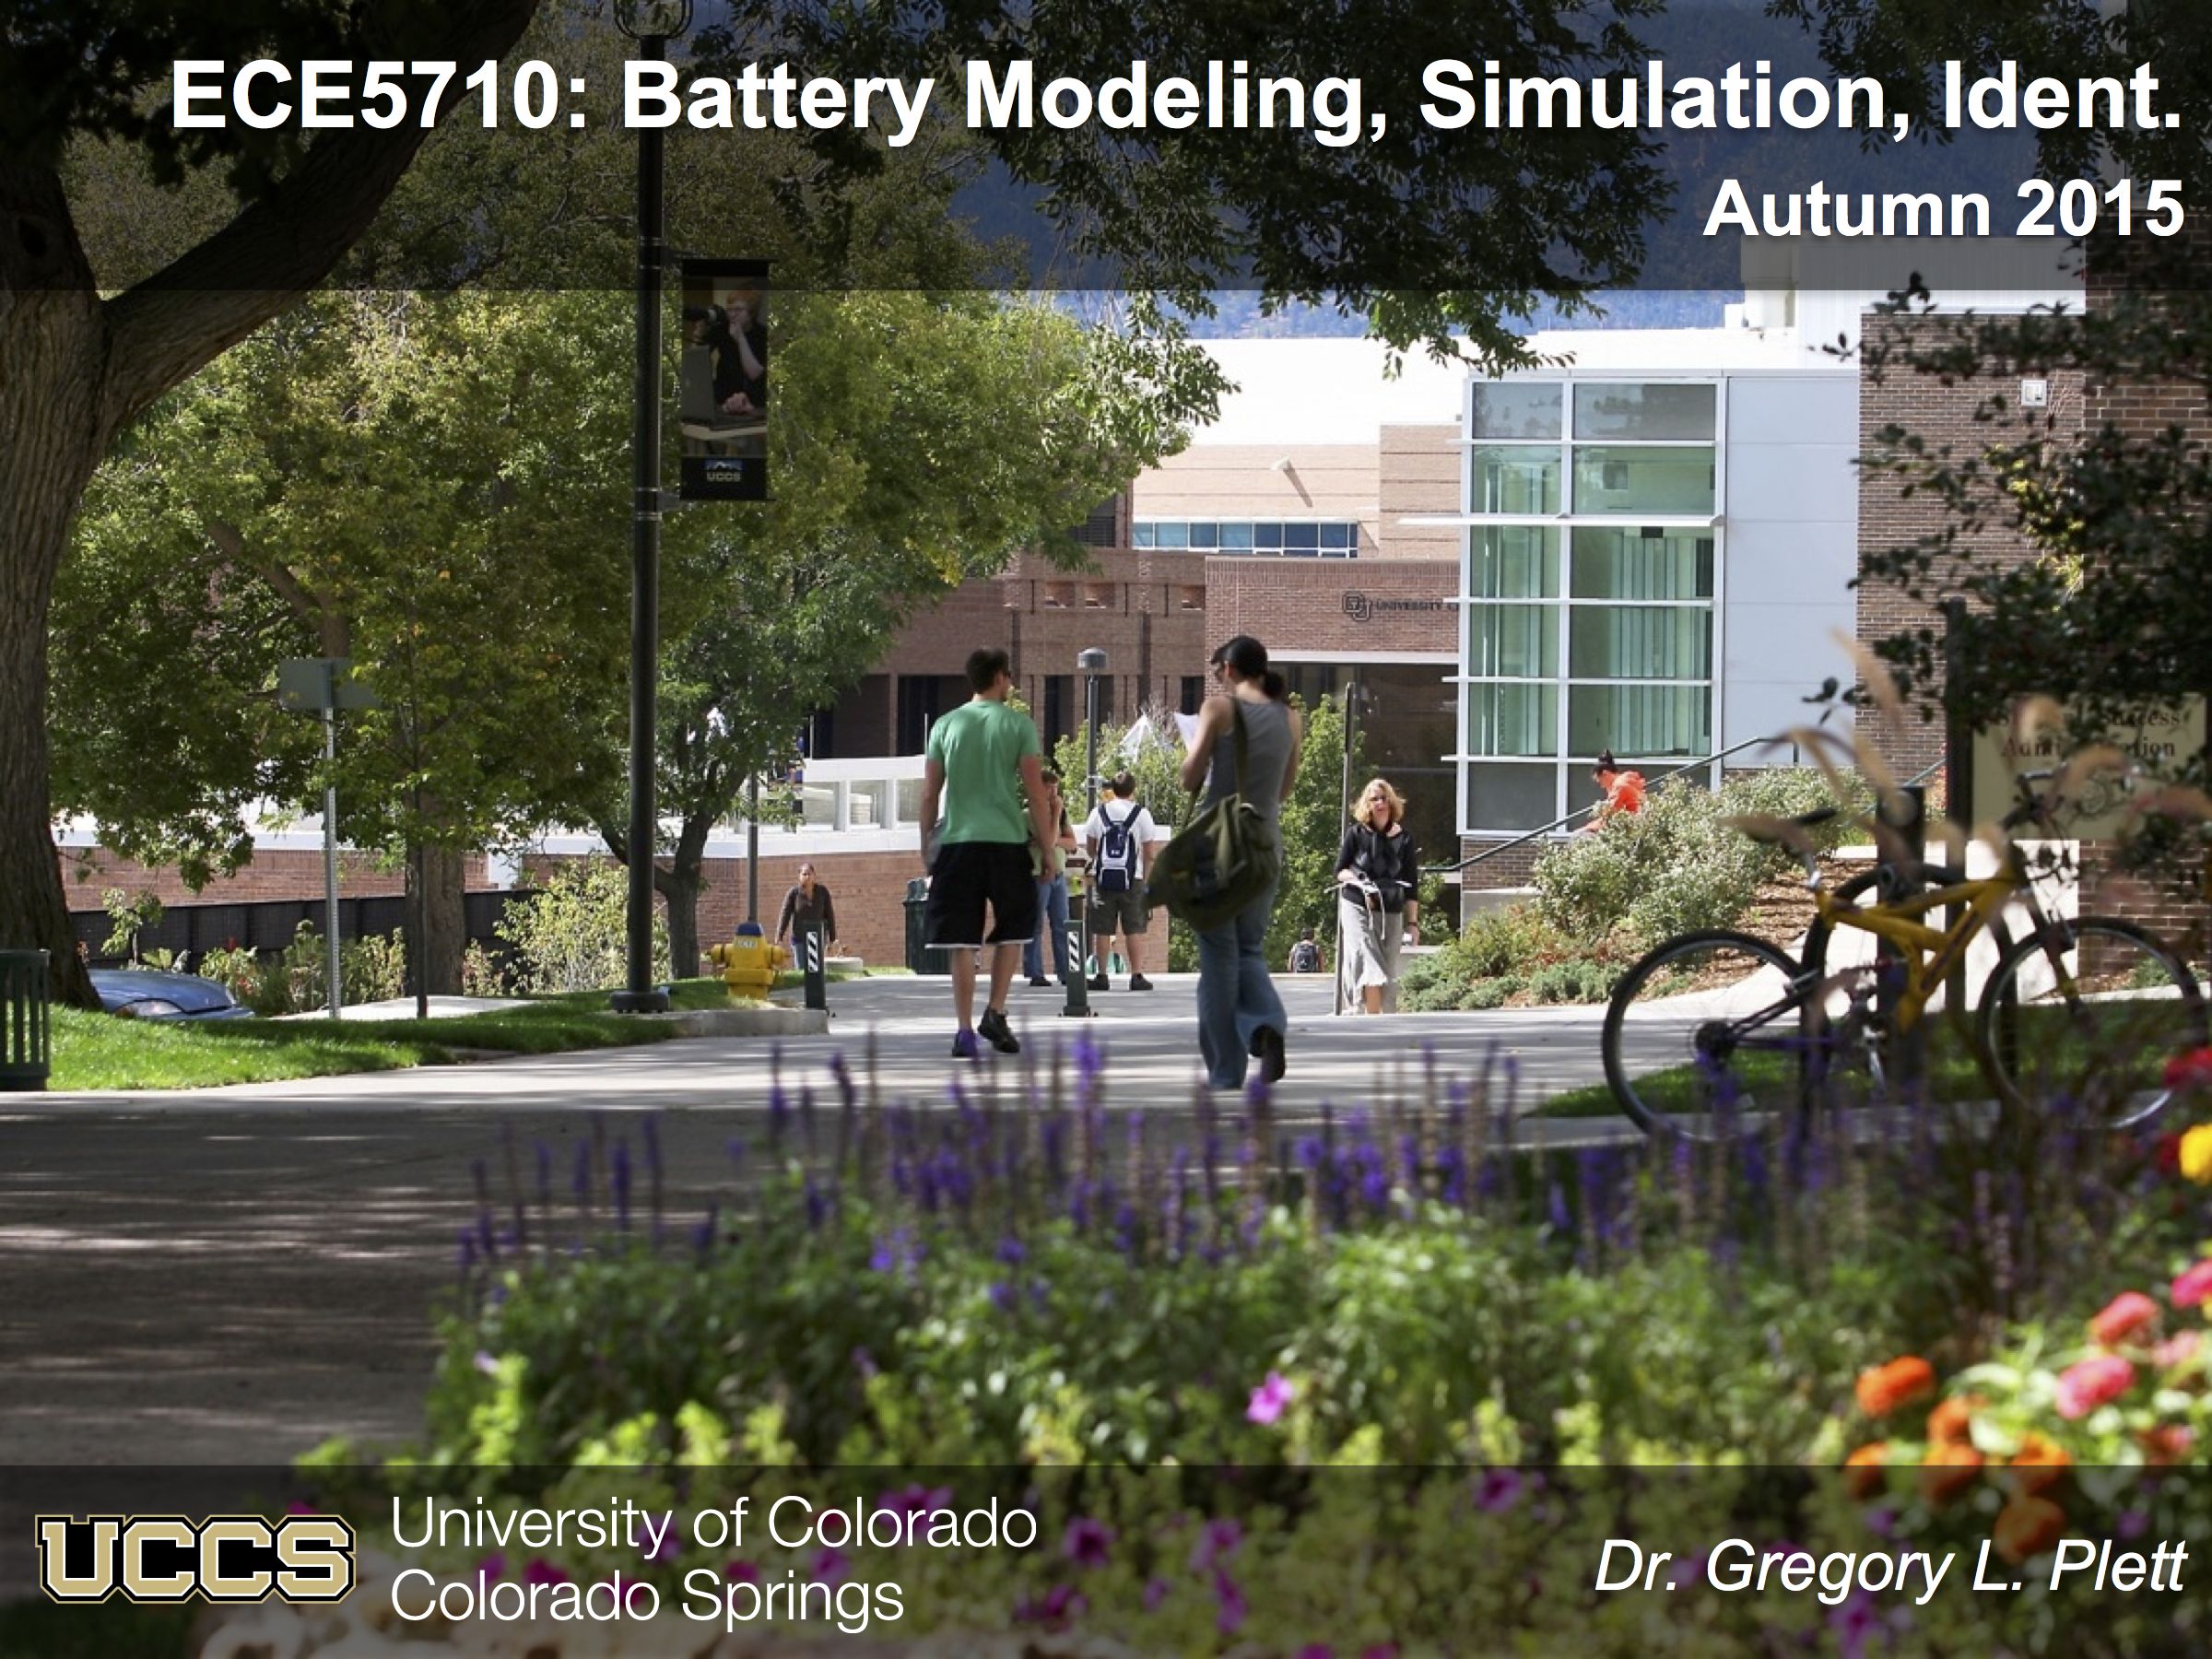 ECE4710/5710: Modeling, Simulation, and Identification of Battery